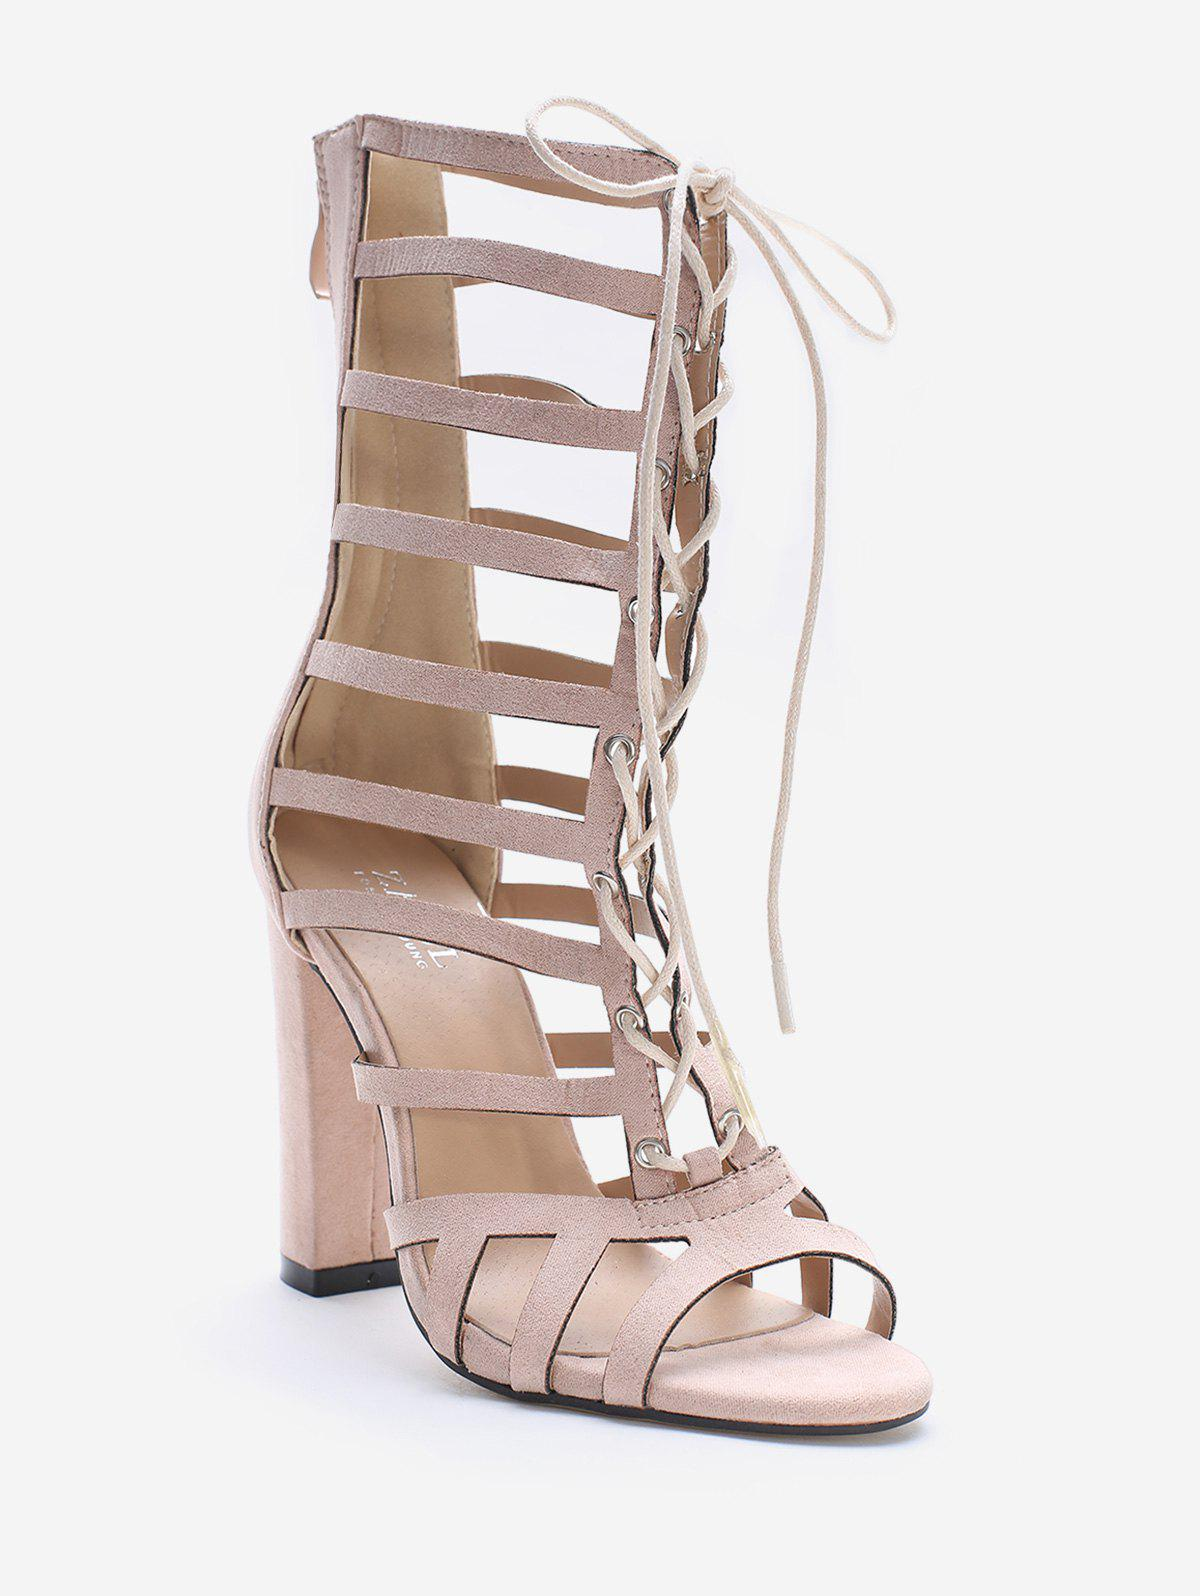 Shops Hollow Out Block Heel Cadged Lace Up Sandals